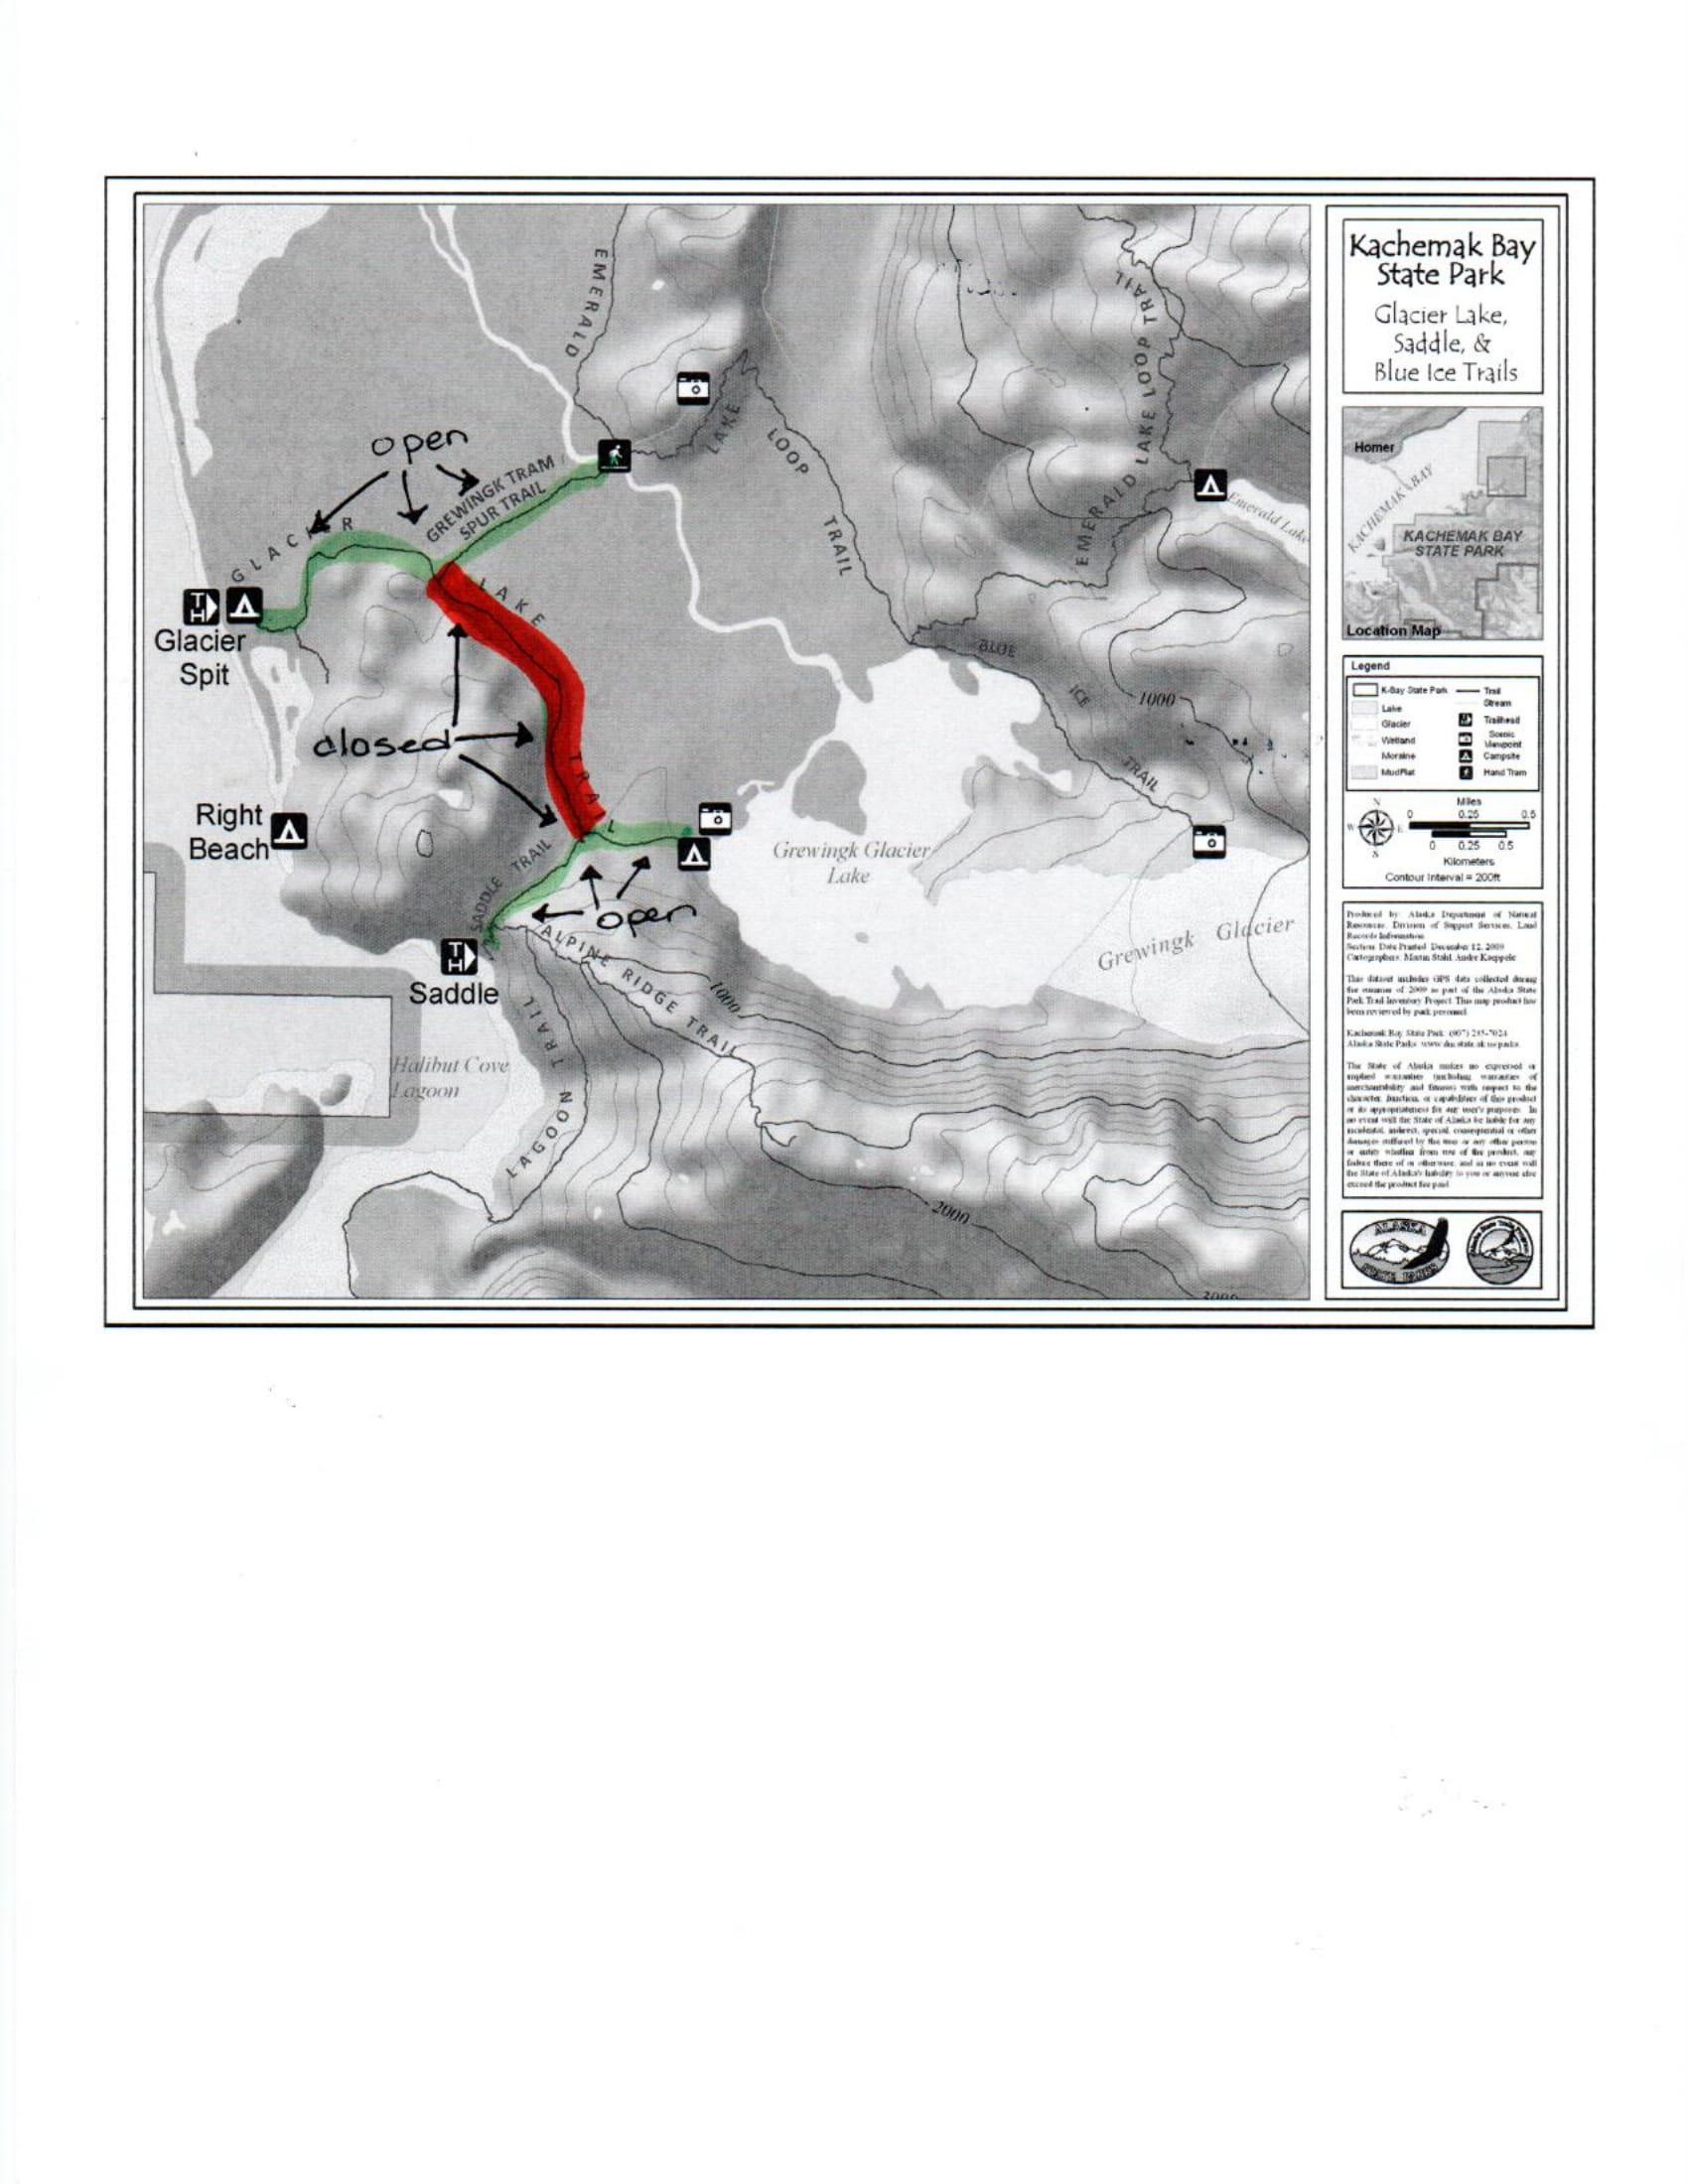 Kachemak State Park Map on wentworth state park, sunrise state park, big lake state park, white mountain state park, springfield state park, happy valley state park, pilot point state park, kenai state park, togiak state park, delta junction state park, fishhook state park, juneau state park, lowell point state park, fox river state park, primrose state park, houston state park, eagle state park, mcgrath state park, weston state park, clayton state park,